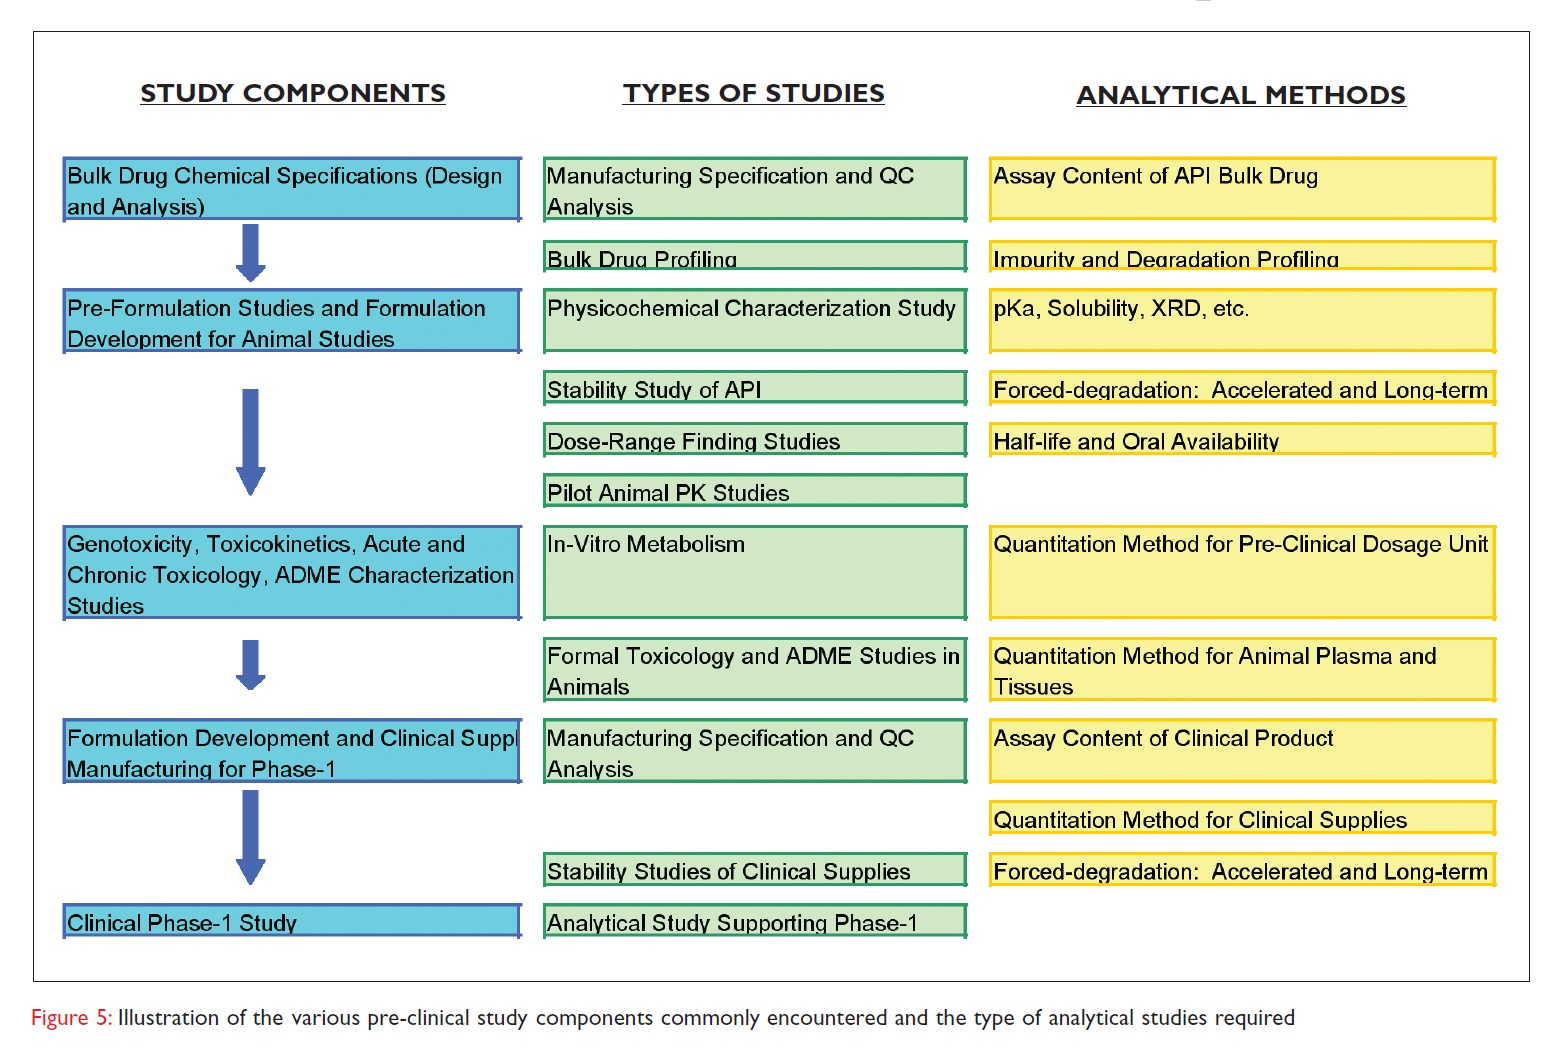 Figure 5 Illustration of the various pre-clinical study components commonly encountered and the type of analytical studies required